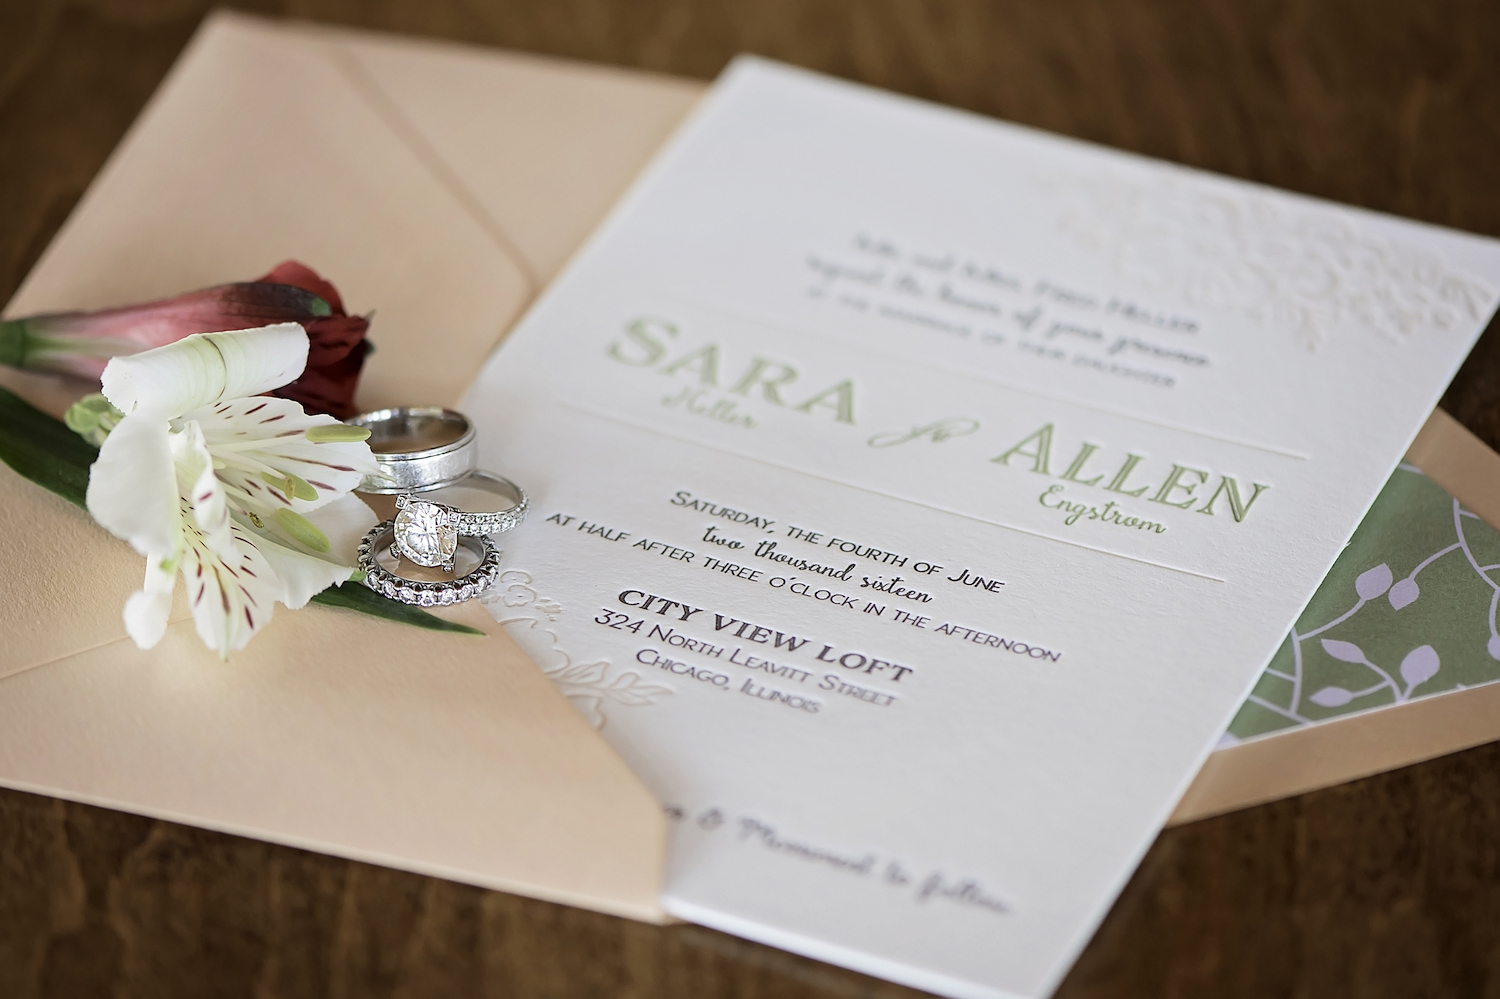 Chicago Wedding Styled Shoot - where urban meets vintage / photo by Maria Nicole Photography / invitation by Lucky Invitations